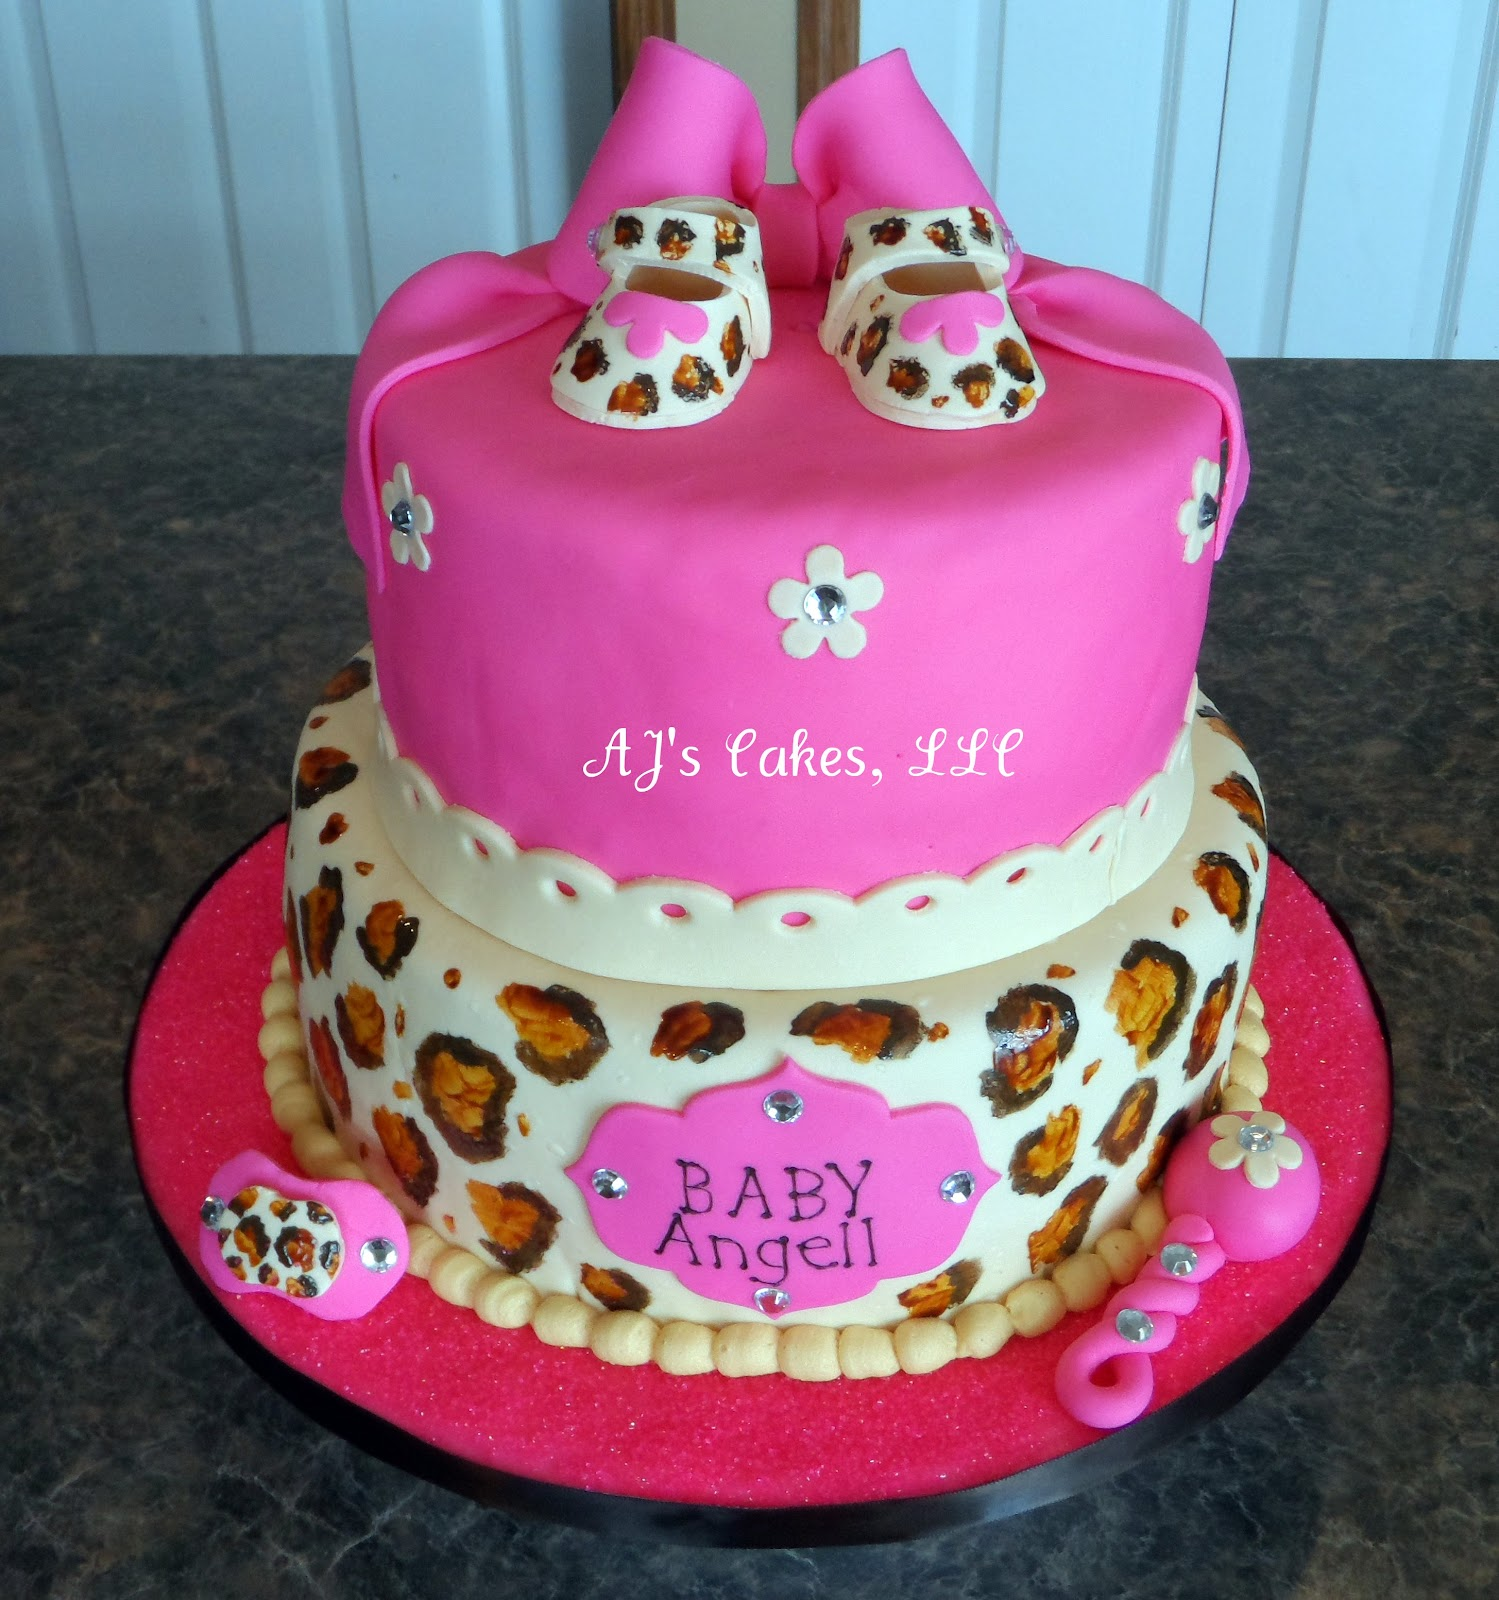 AJ's Cakes: Pink Cheetah Baby Shower Cake